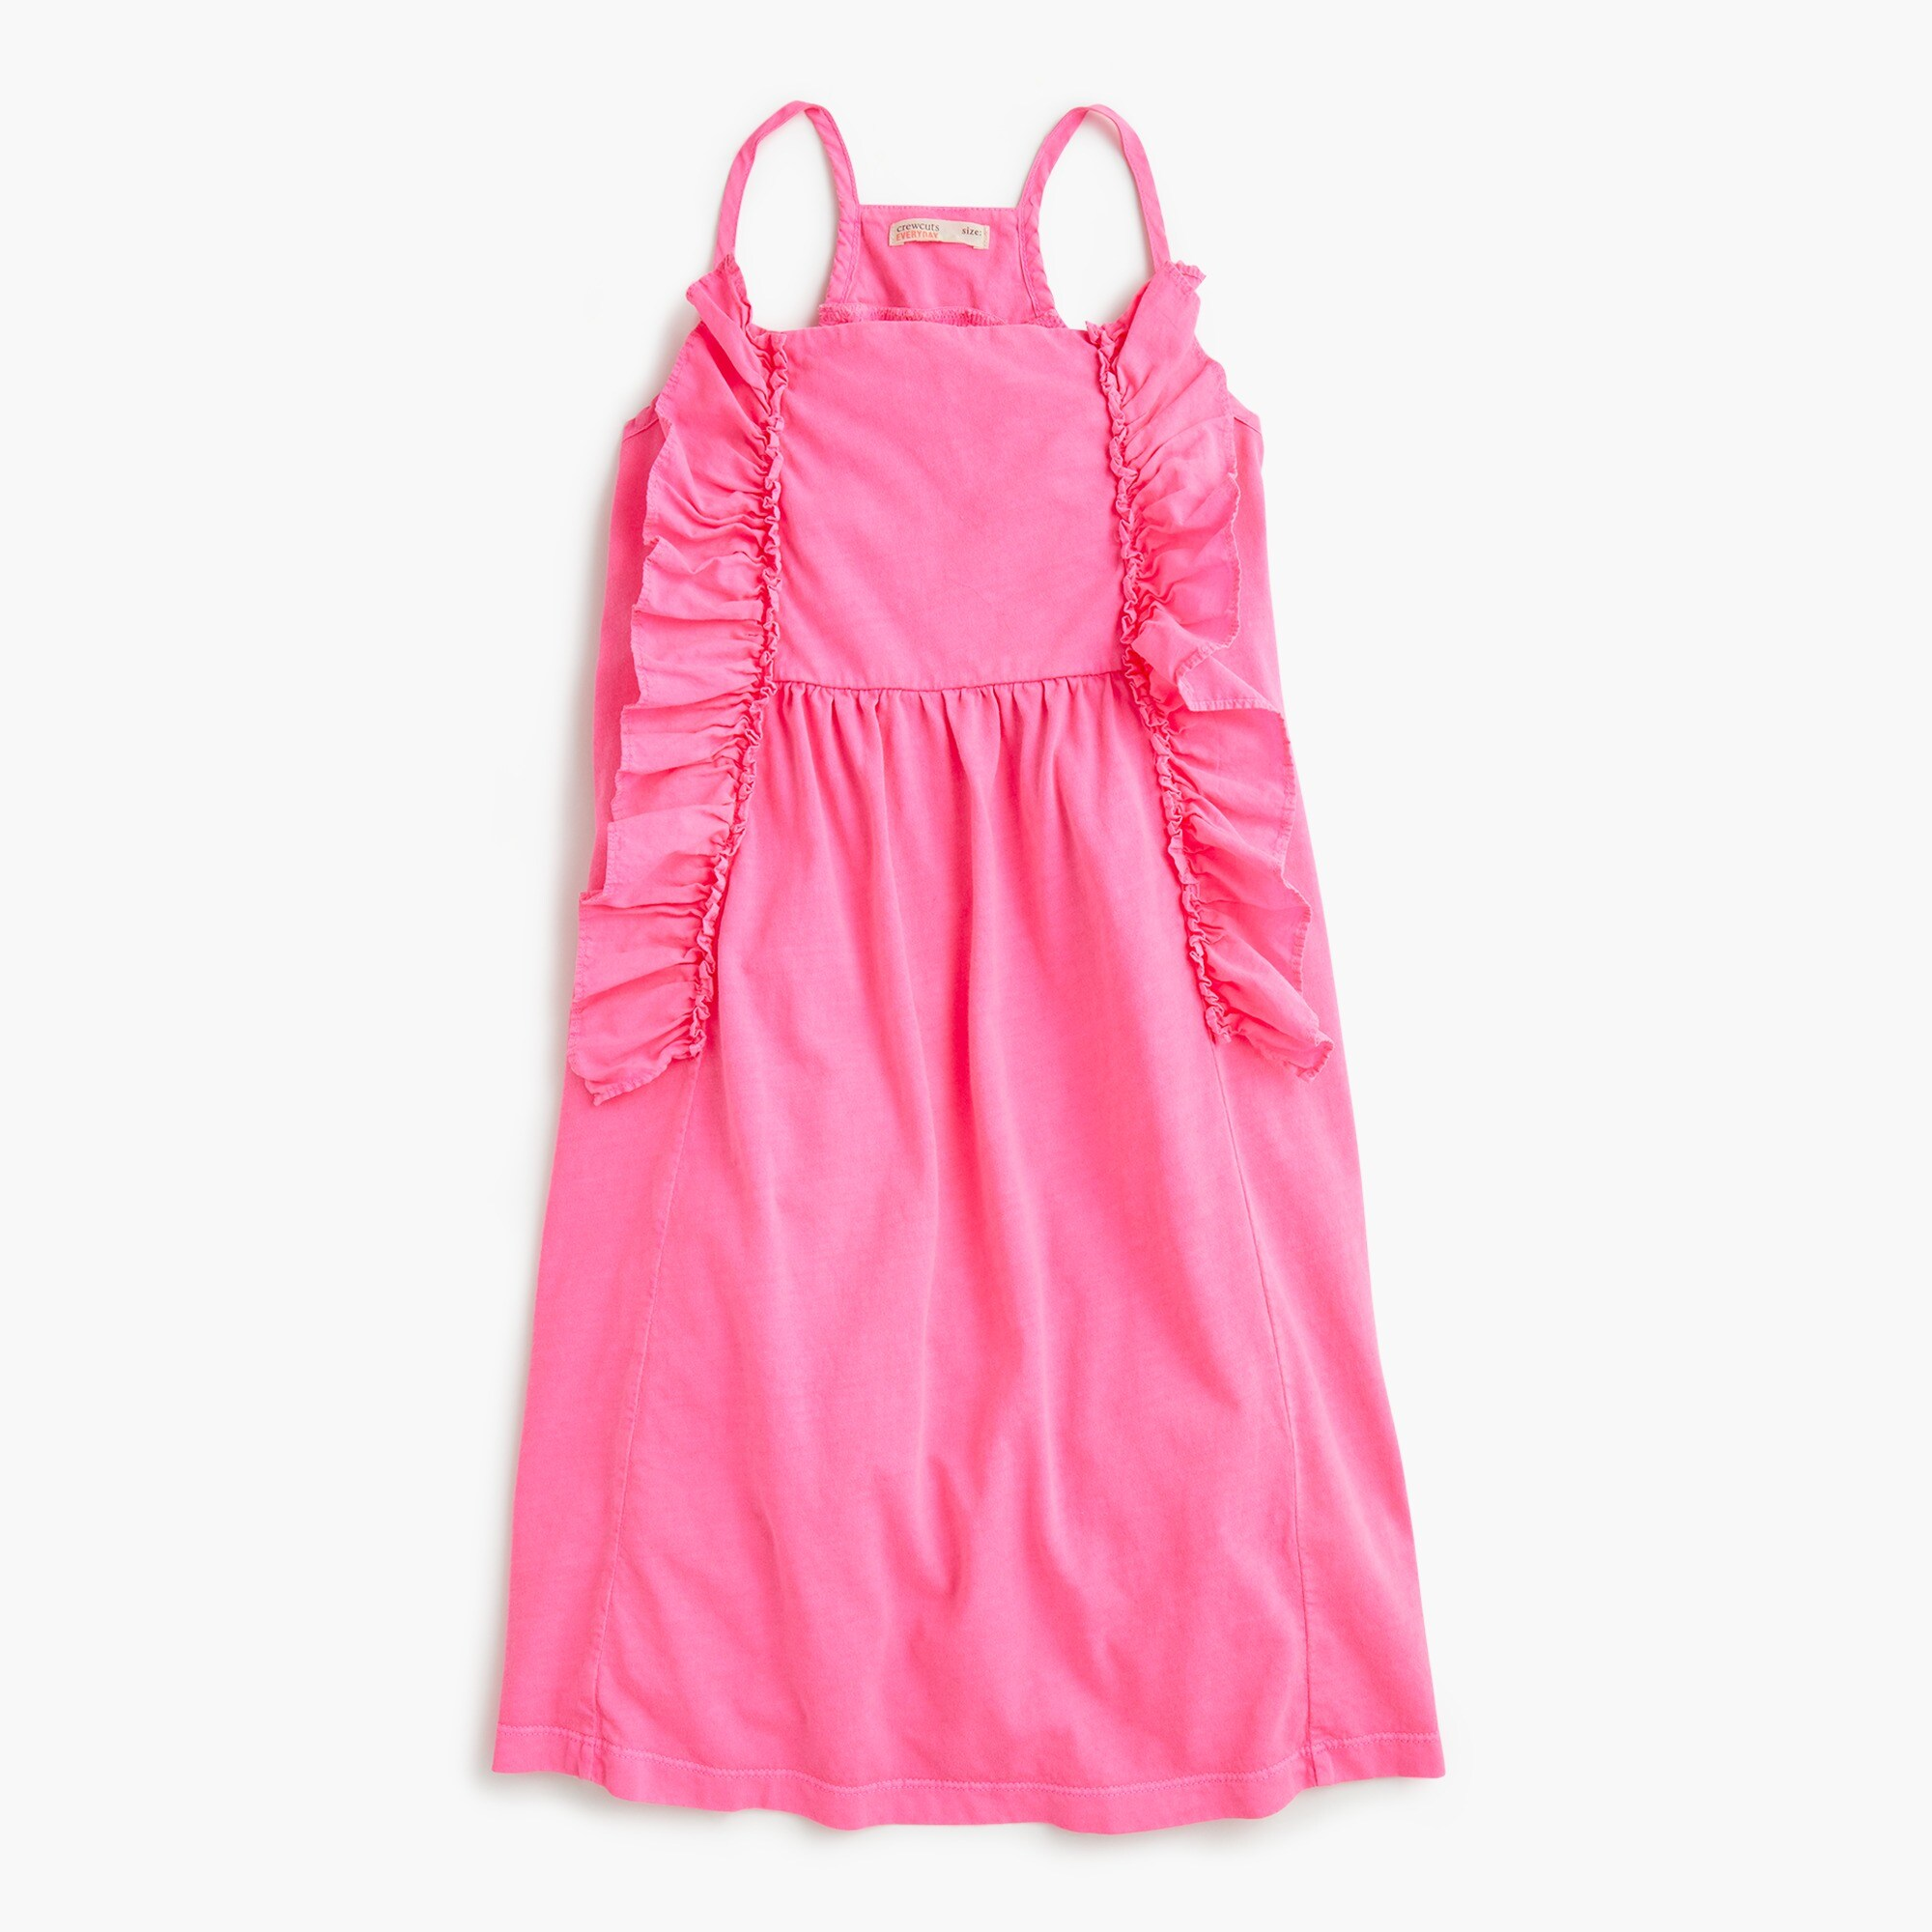 Image 1 for GIrls' neon ruffle dress